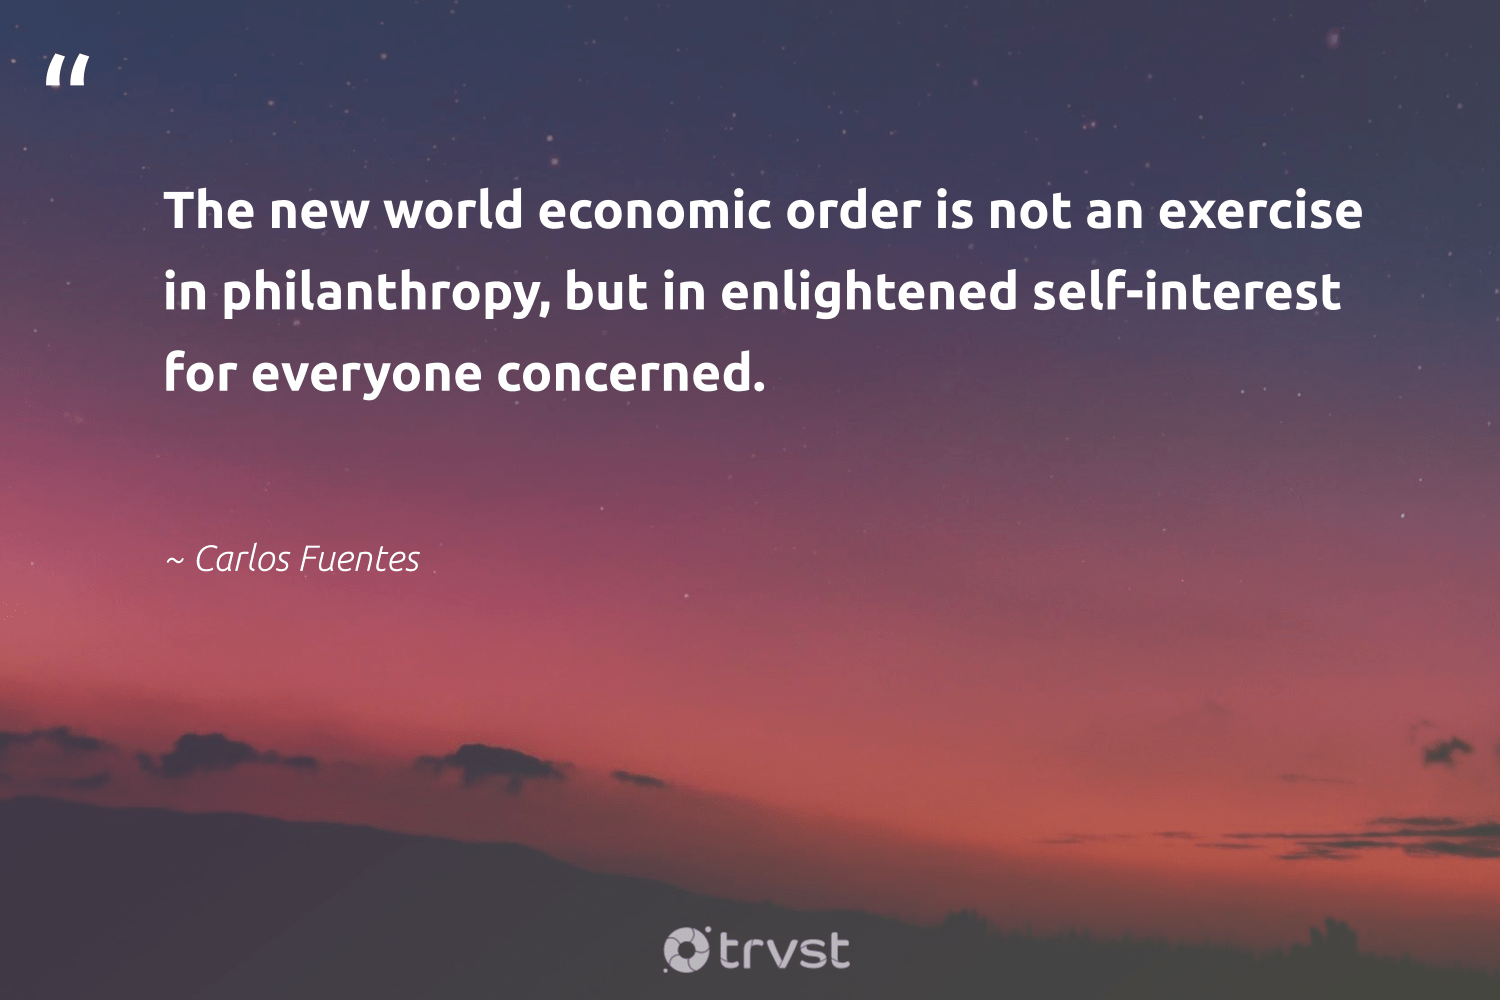 """The new world economic order is not an exercise in philanthropy, but in enlightened self-interest for everyone concerned.""  - Carlos Fuentes #trvst #quotes #exercise #philanthropy #bodypositive #togetherwecan #begreat #beinspired #cardio #changemakers #mindset #bethechange"